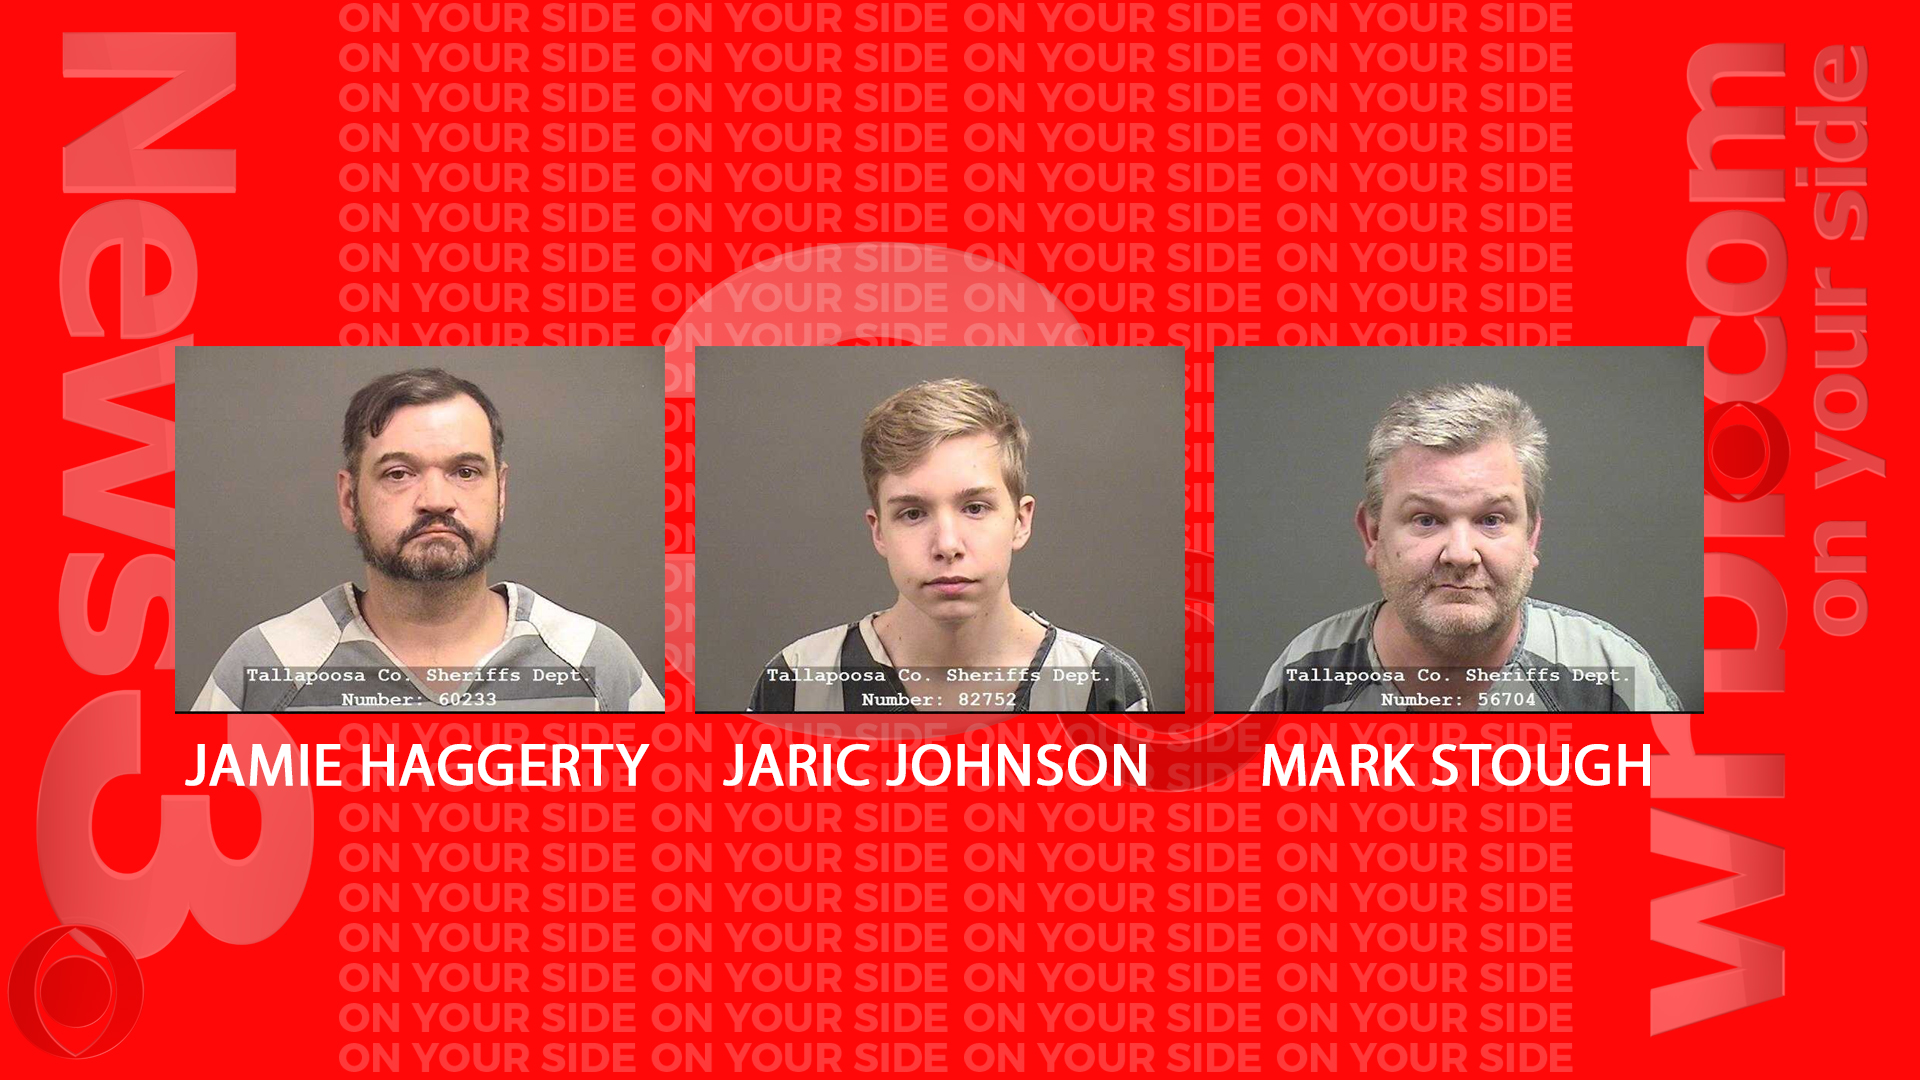 3 offenders, Haggerty Johnson Stough_1557170364094.jpg.jpg